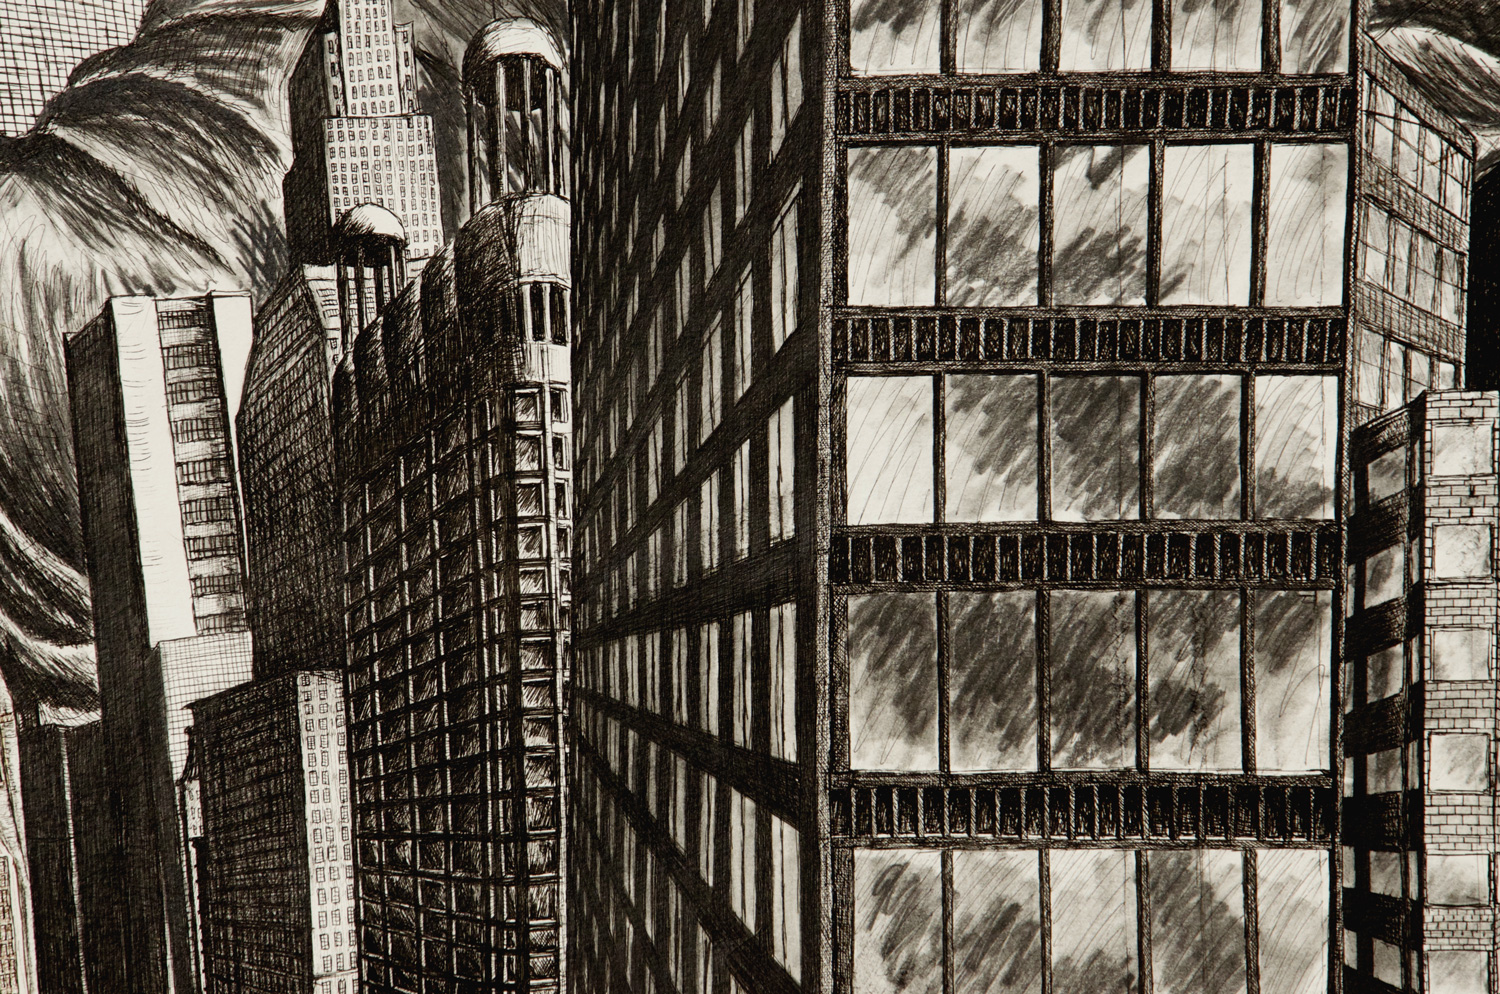 The Turbulent City drawing (Chicago imaginary cityscape), by Billy Reiter